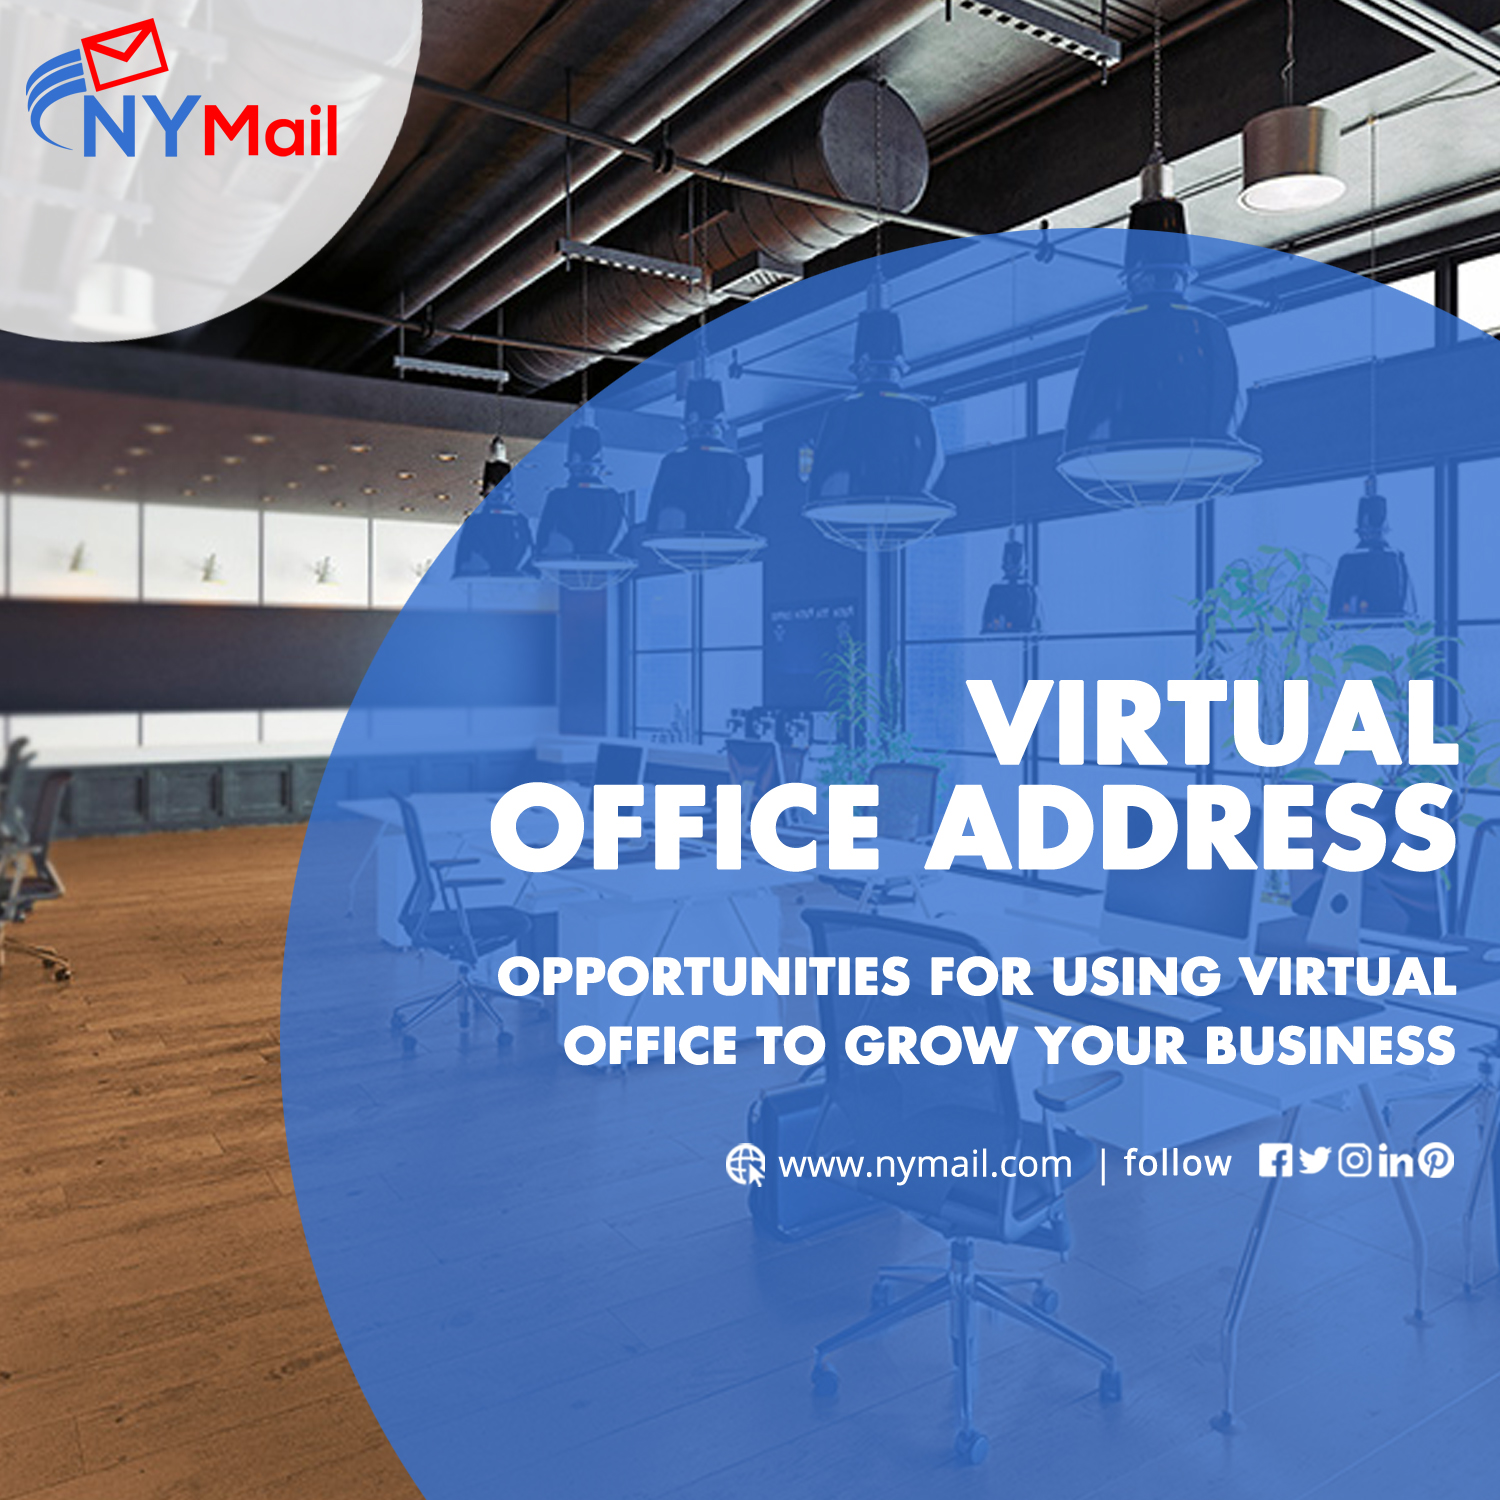 Virtual Office, Opportunities For Using Virtual Office To Grow Your Business